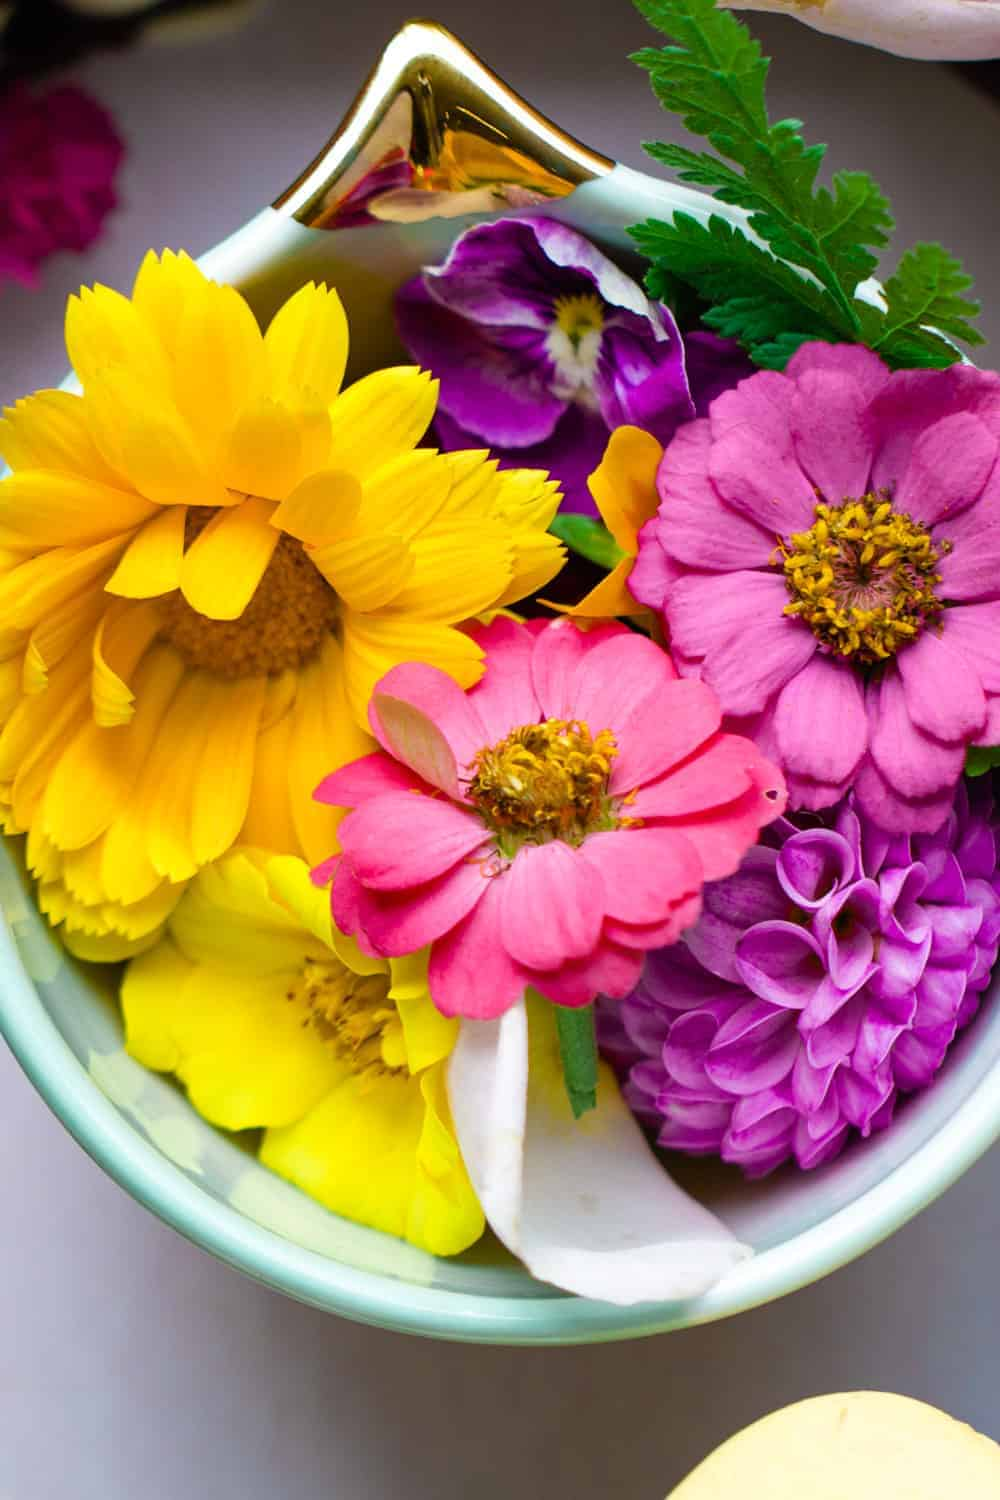 A small bowl of fresh edible flowers